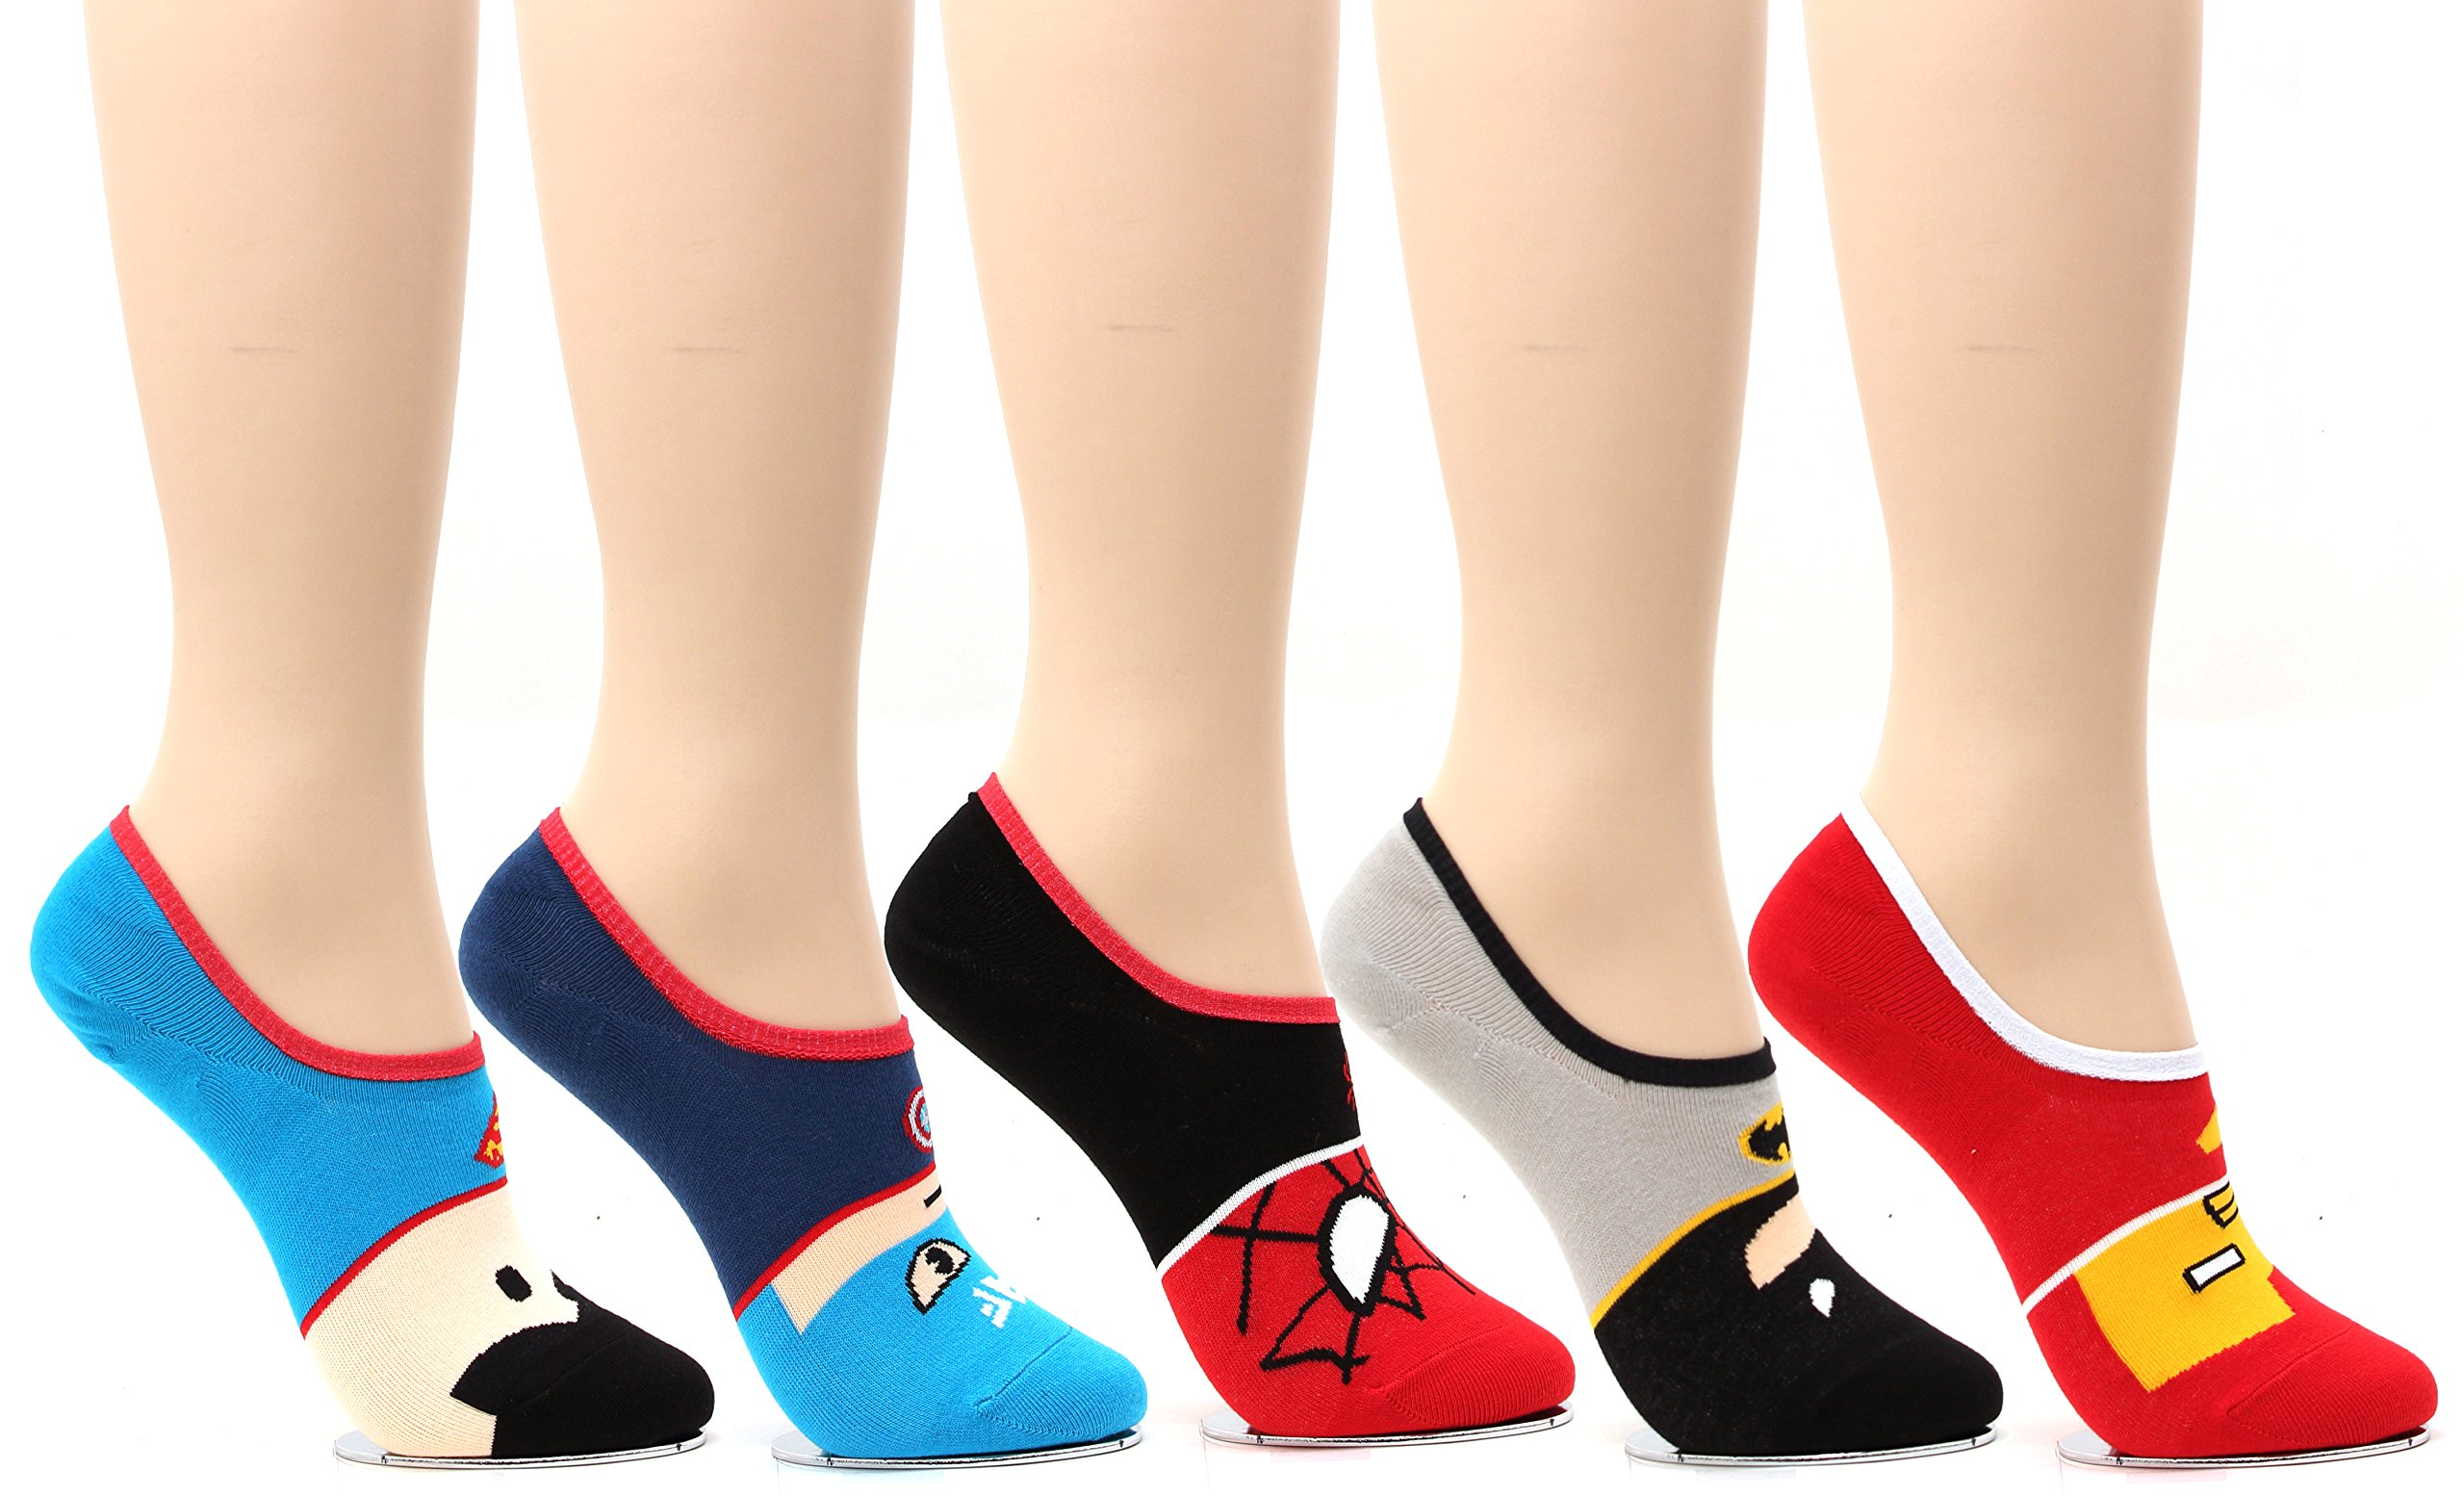 5 Pairs Marvel Original Avengers Low cut Crew Ankle No Show Socks (5pairs-No Show Socks) by WOWFOOT (Image #3)